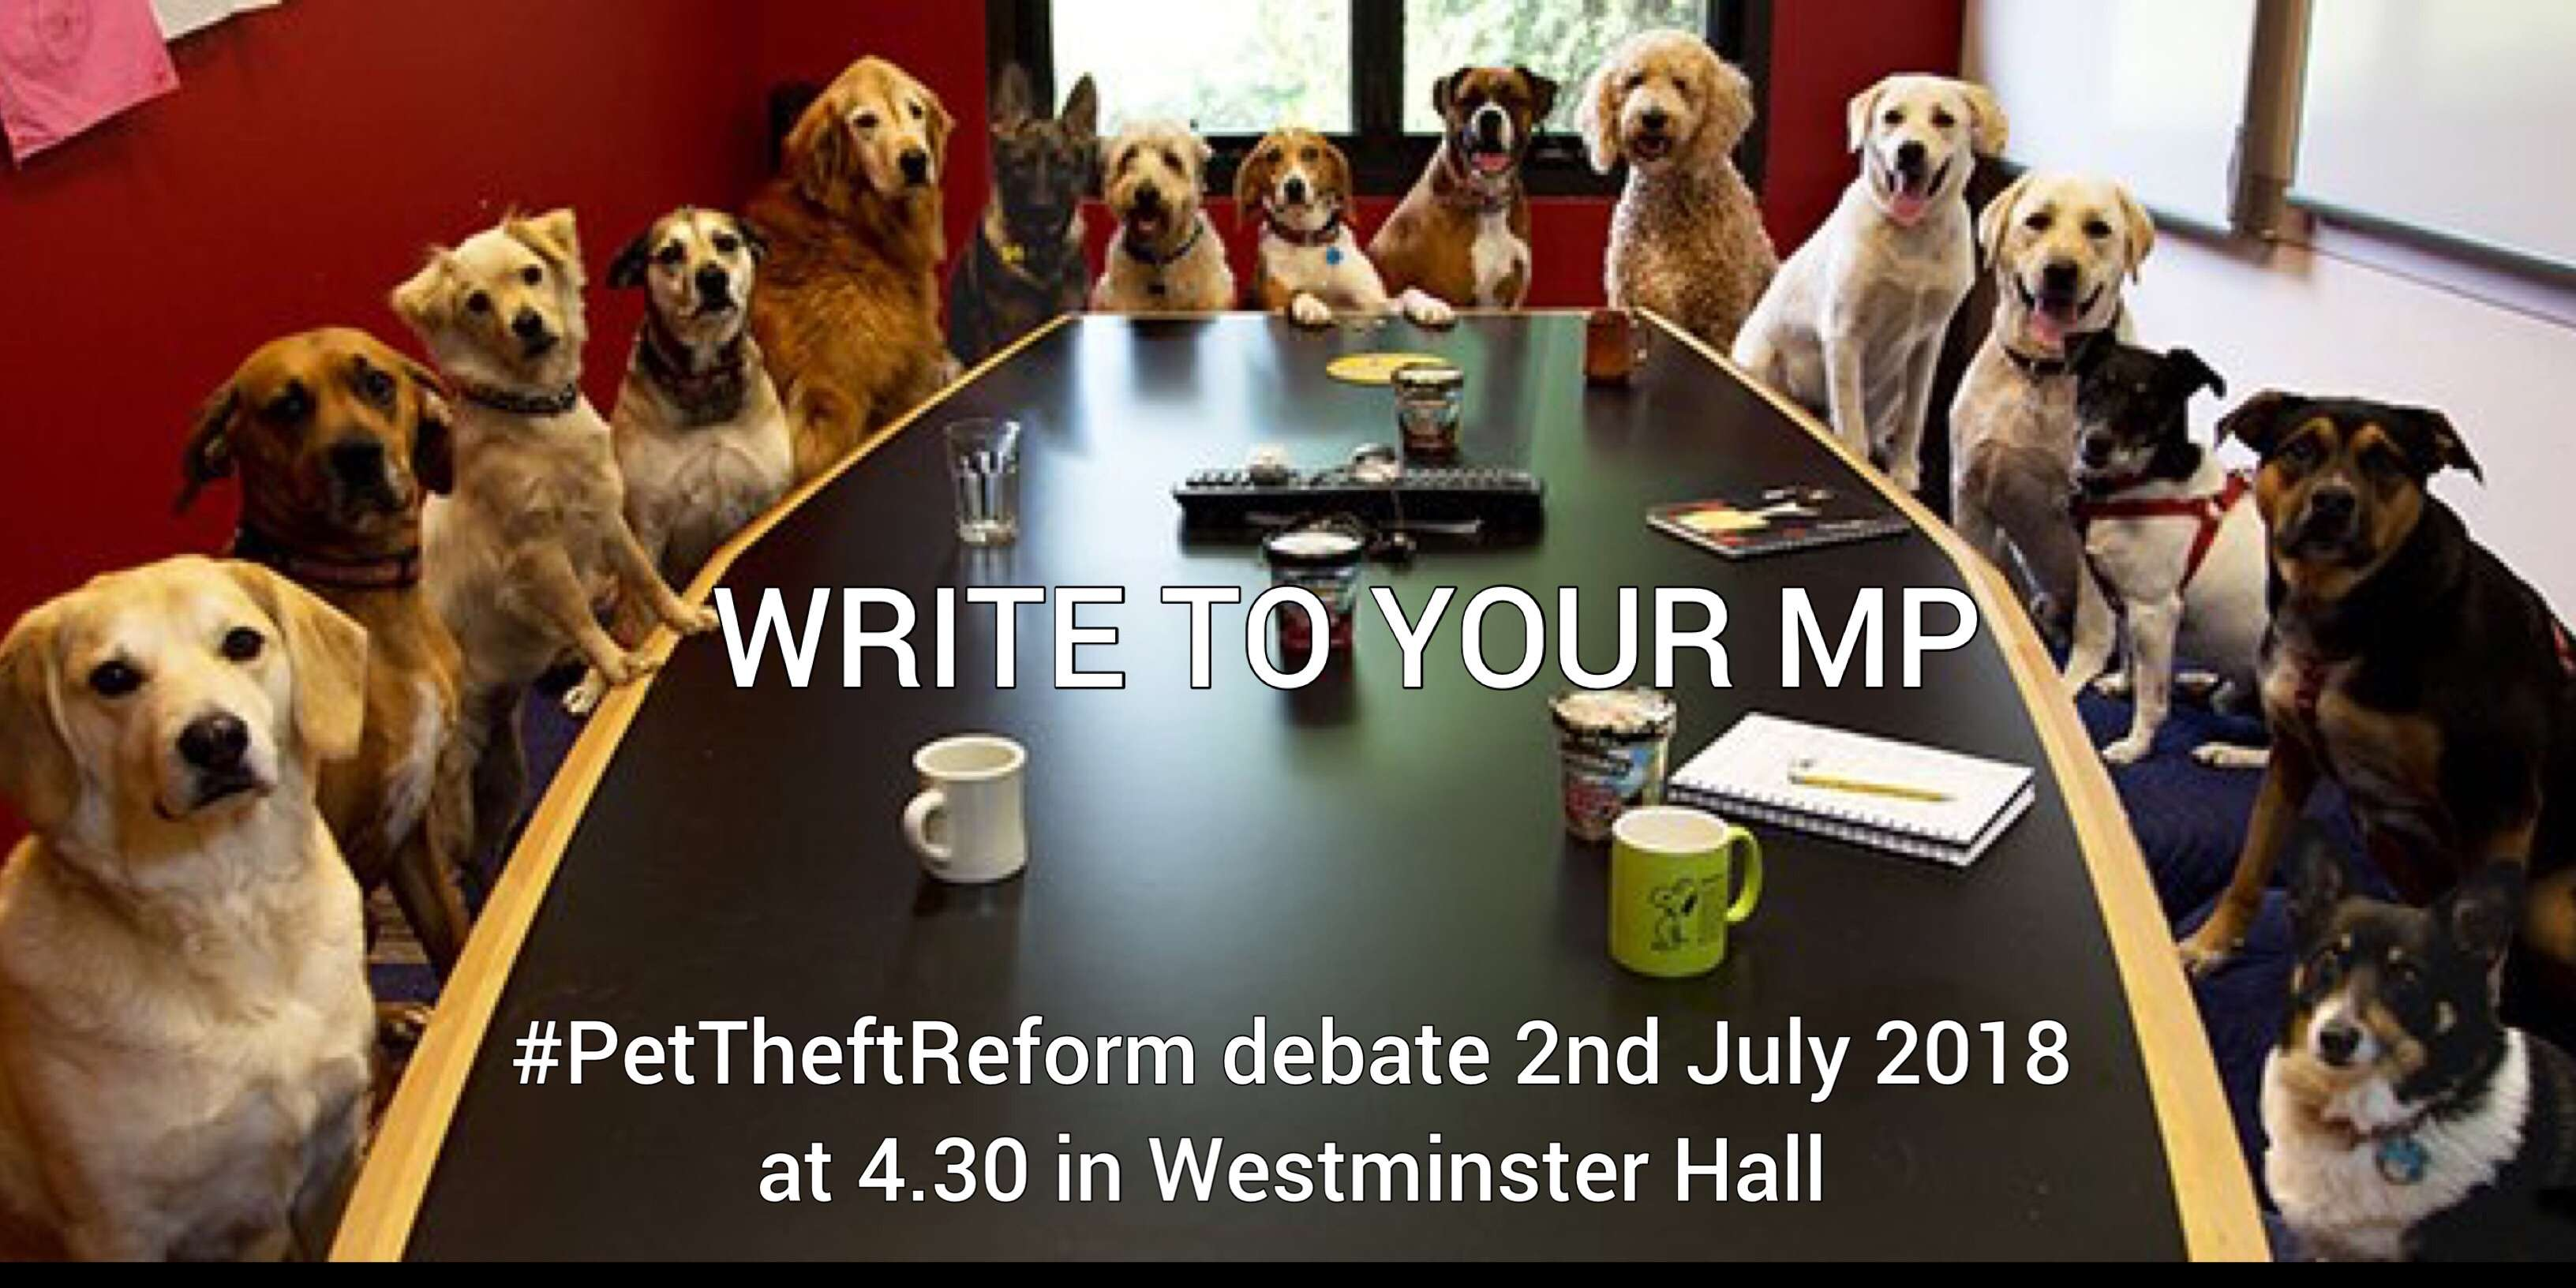 #PetTheft debate is on 2nd July 2018 in Westminster Hall at 4.30.  Please email your MP.